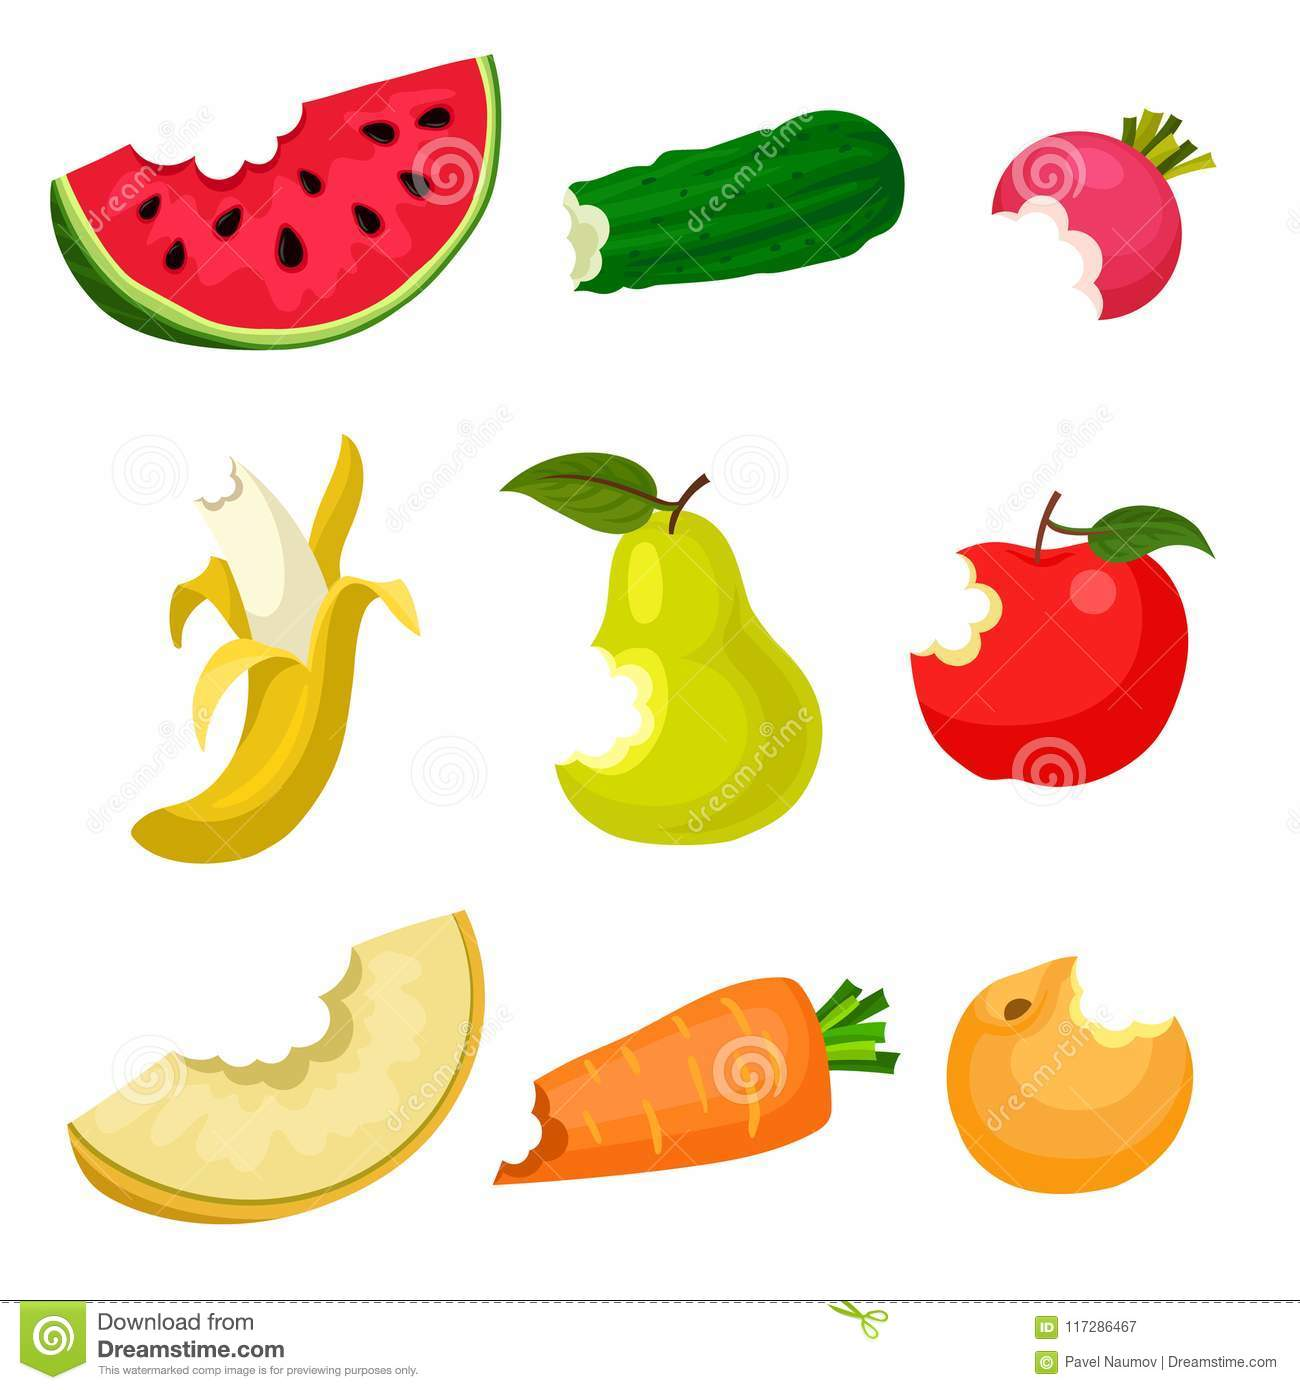 Flat vector set of bitten fruits and vegetables. Natural and tasty food. Healthy nutrition. Design for poster, banner or